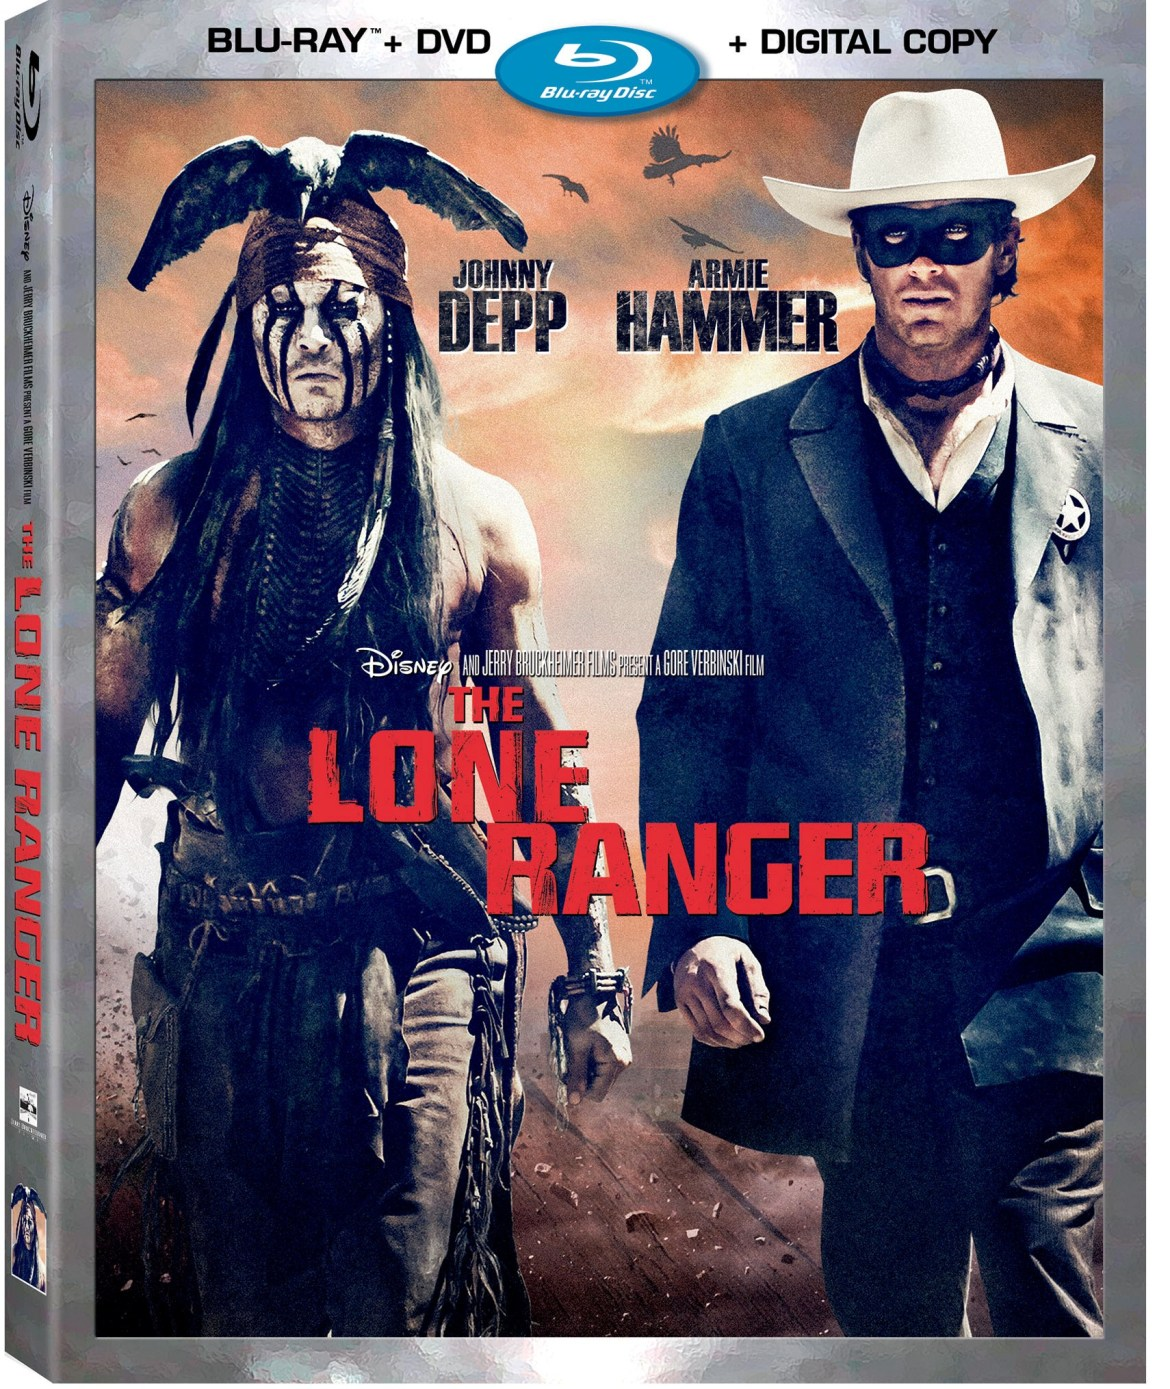 The Lone Ranger coming to Blu-ray/DVD December 17th